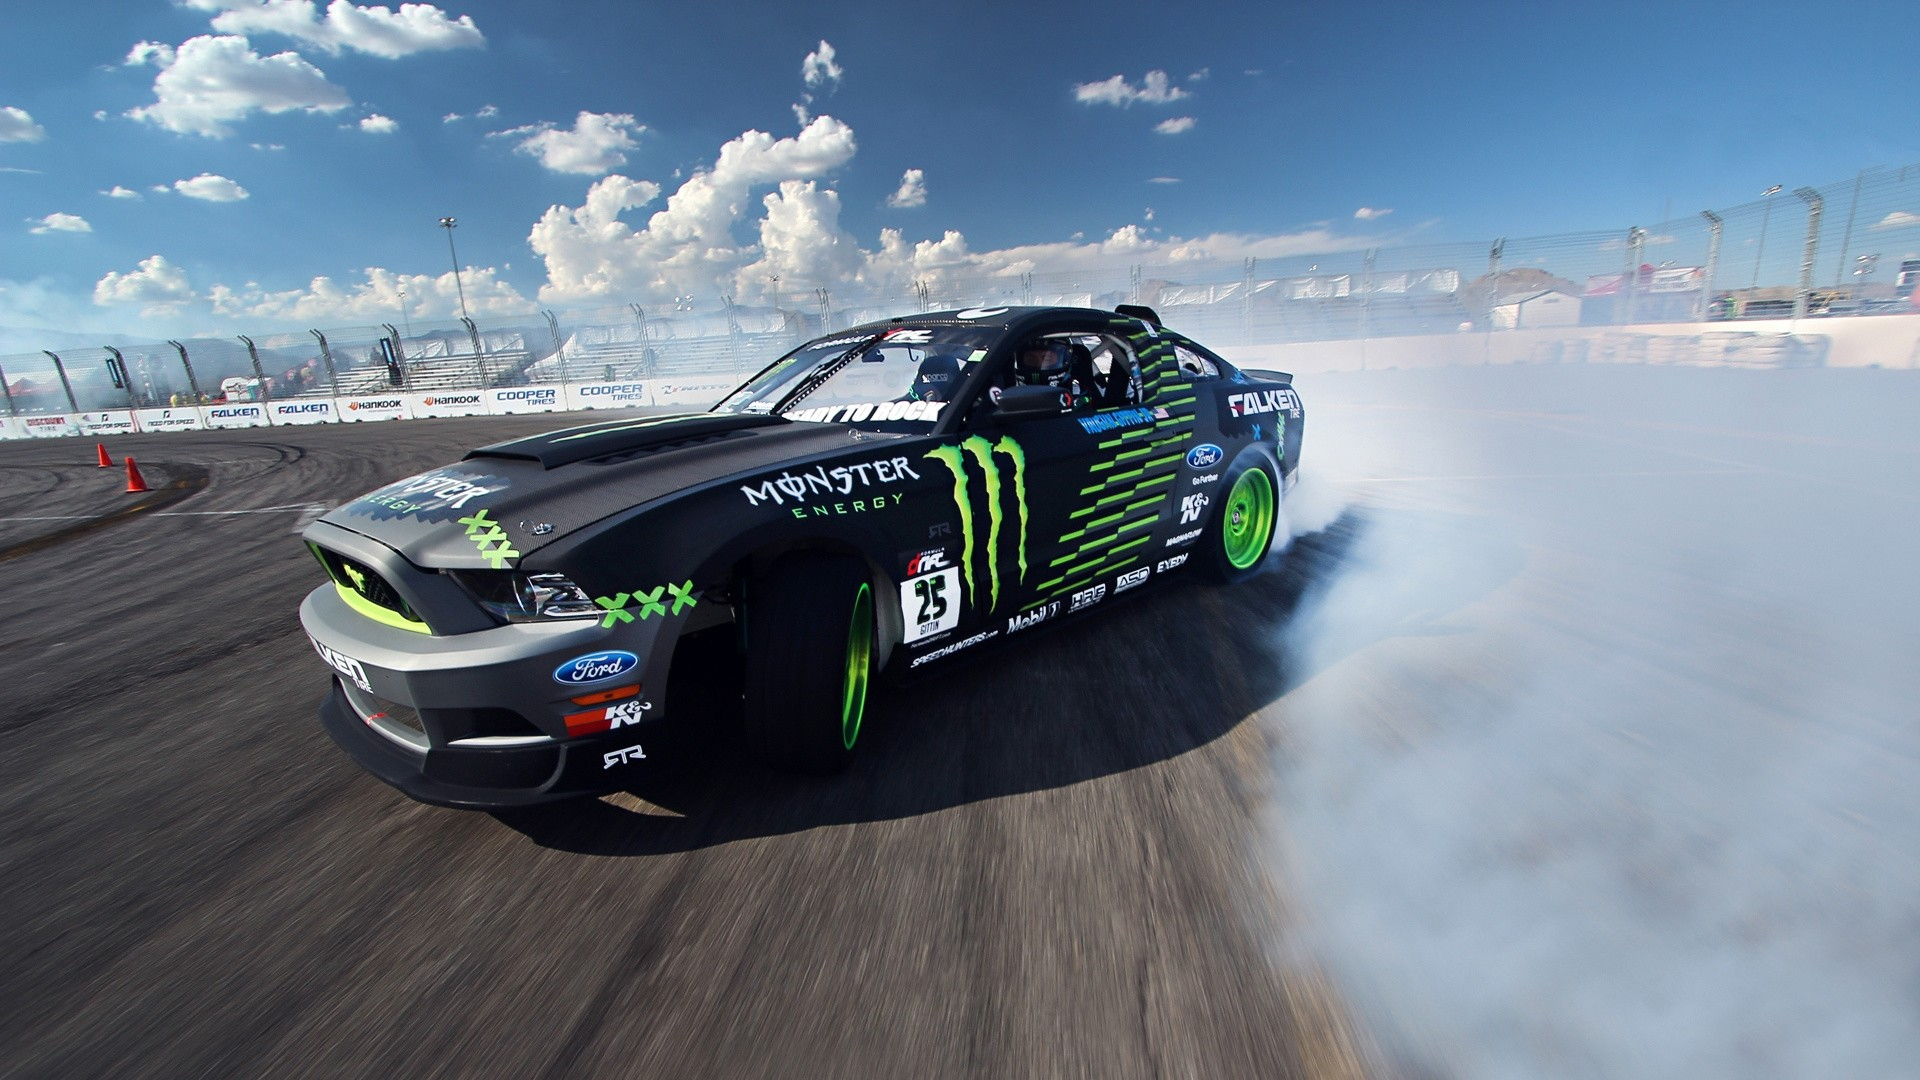 1920x1080 Preview wallpaper competition, drift, sports car, mustang, clouds, ford, gt